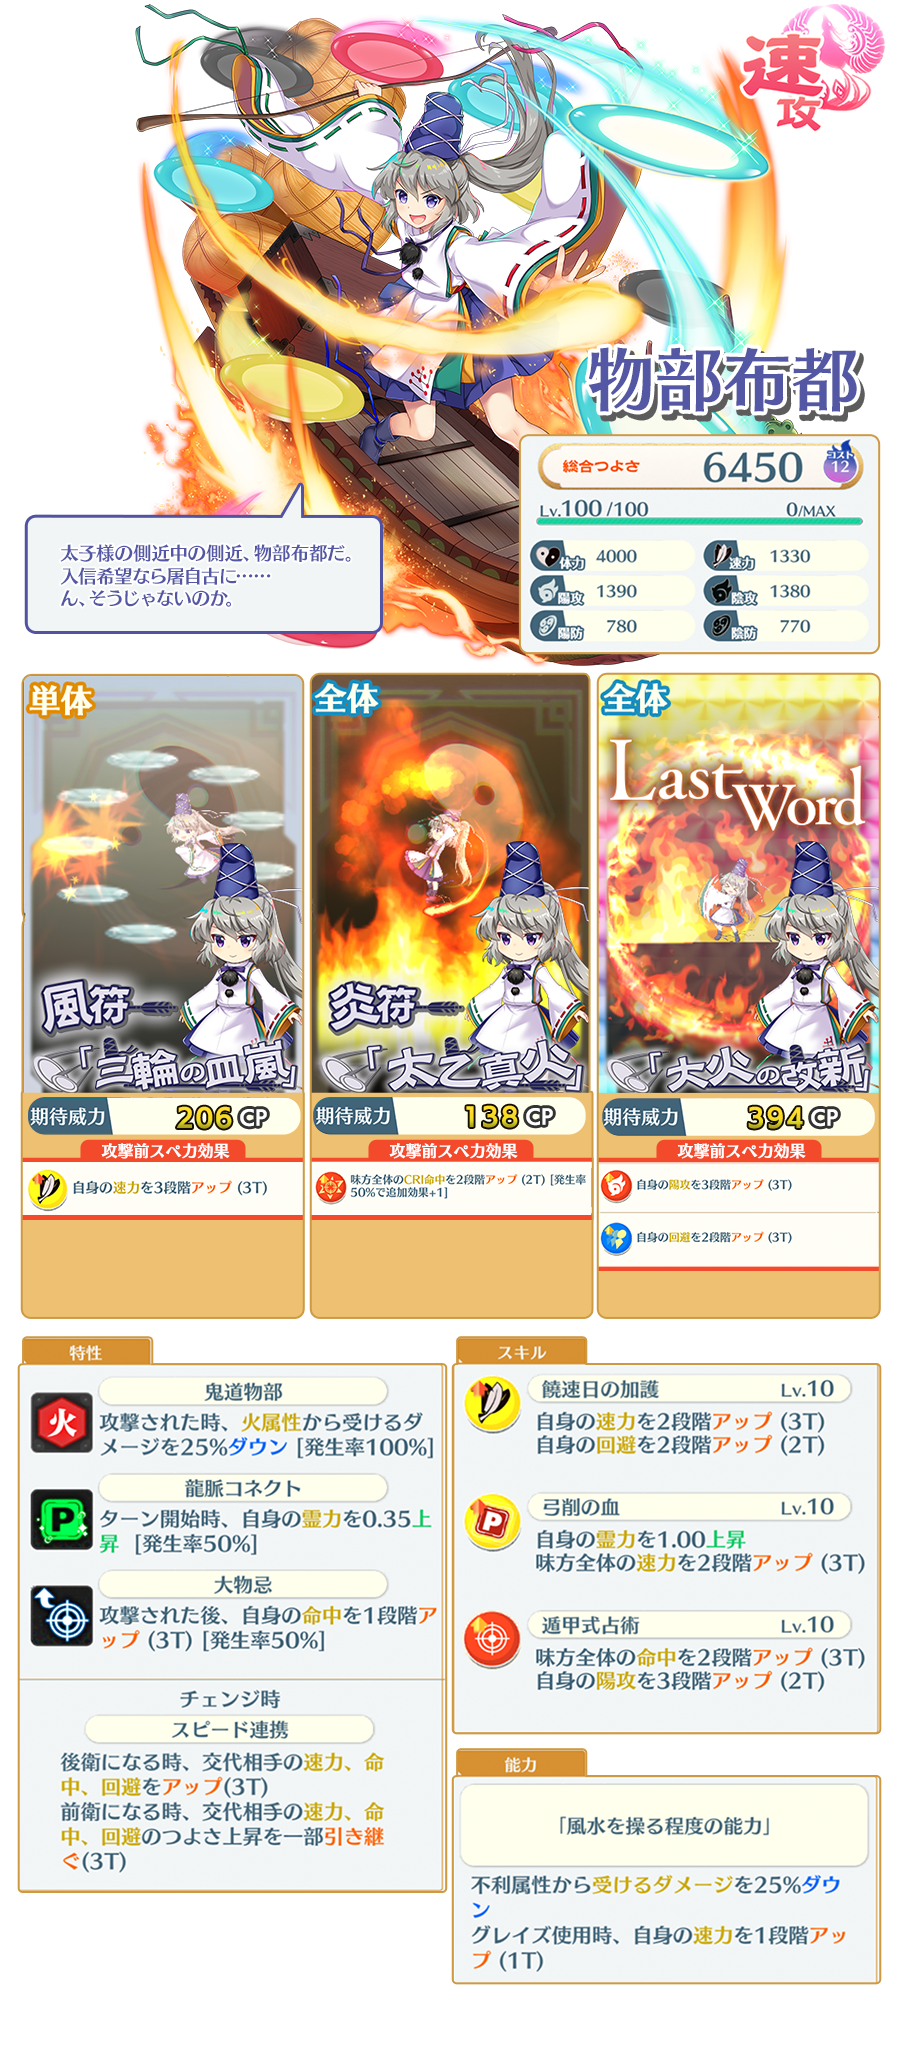 https://touhoulostword.com/wp-content/uploads/2021/07/Banner_Chara_01_ncvsoi.png